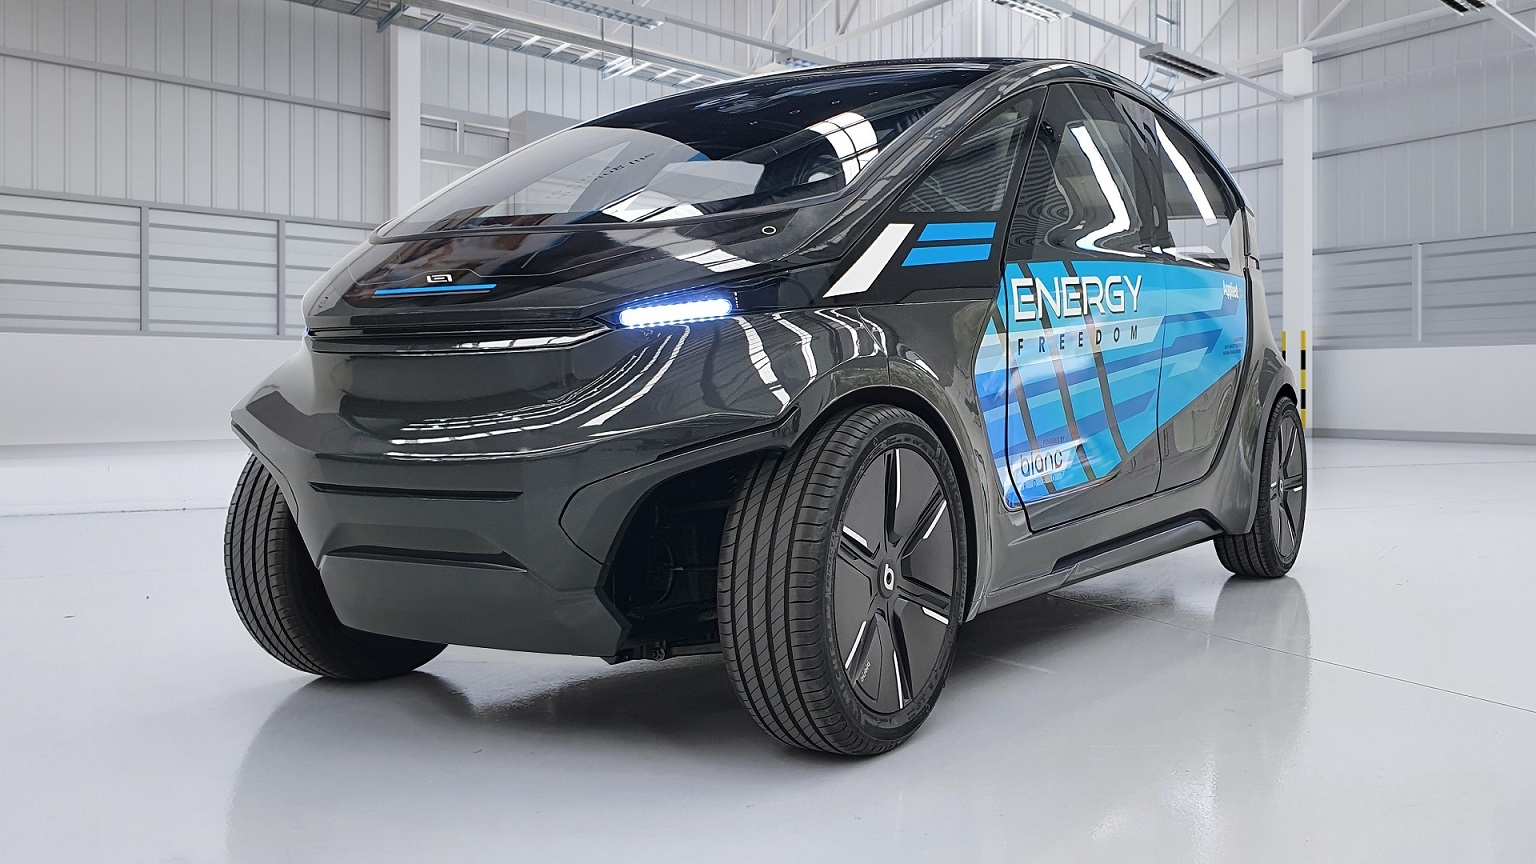 Teijin's prototype EV is designed to only travel at low speeds